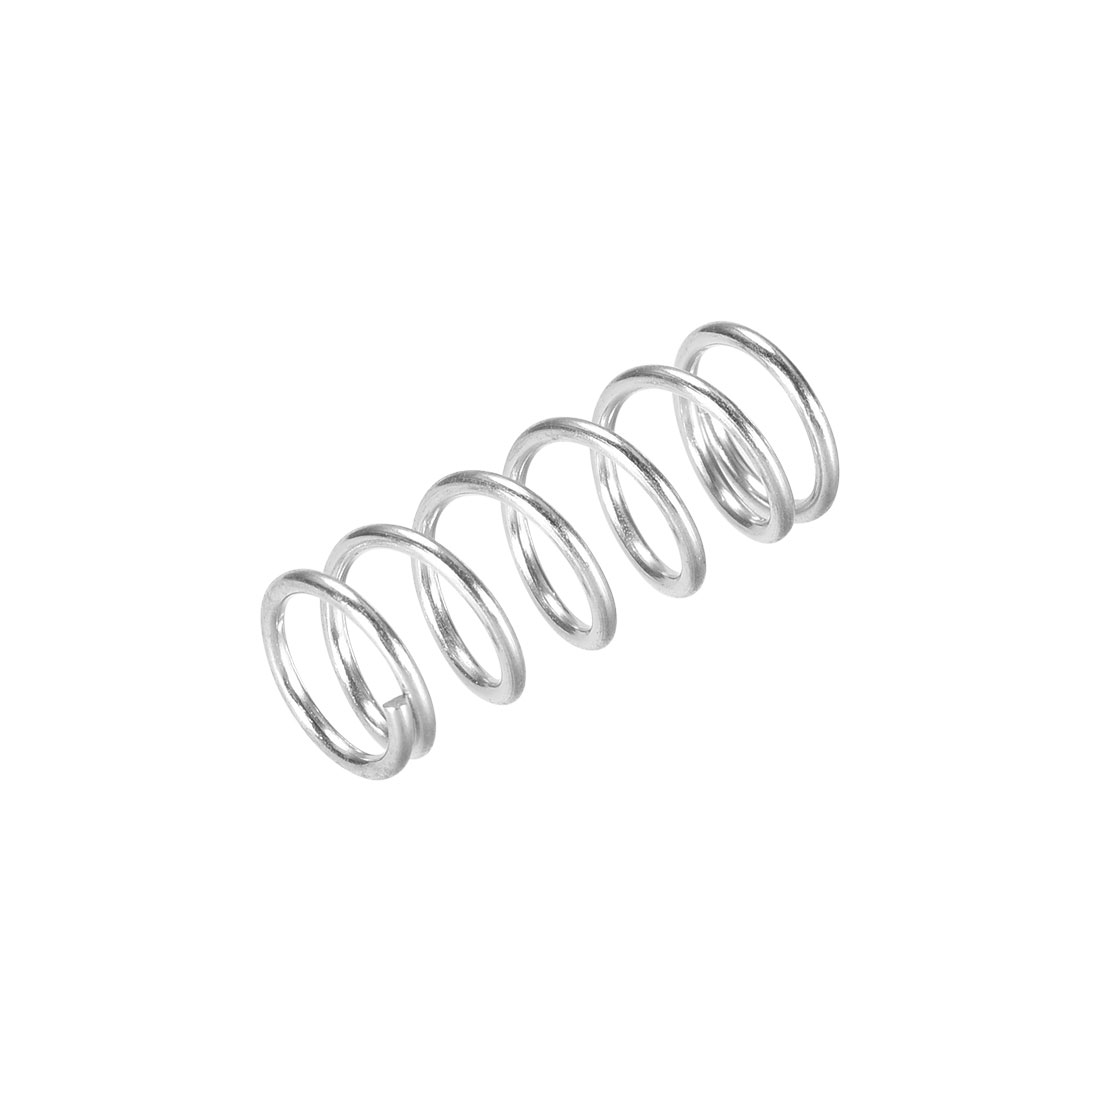 Heated Bed Springs for 3D Printer Extruder Compression Spring, 9 x 22 mm 20pcs